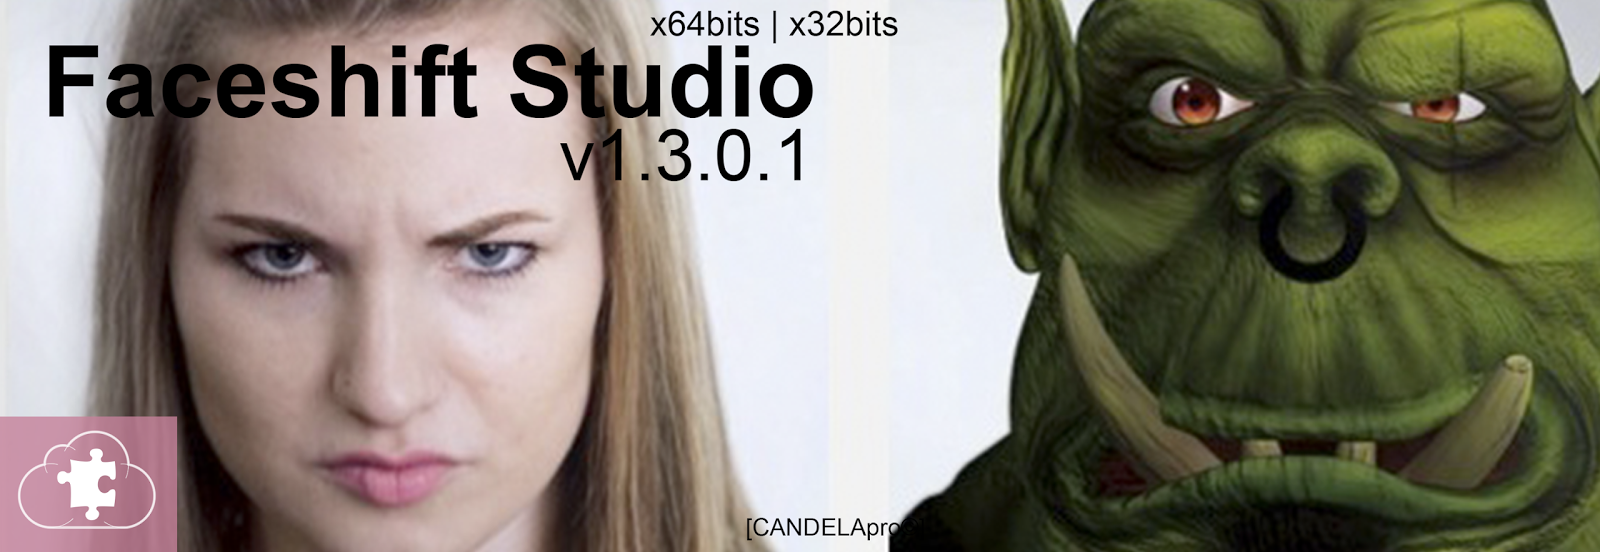 Faceshift Studio v1.3.0.1 Win64